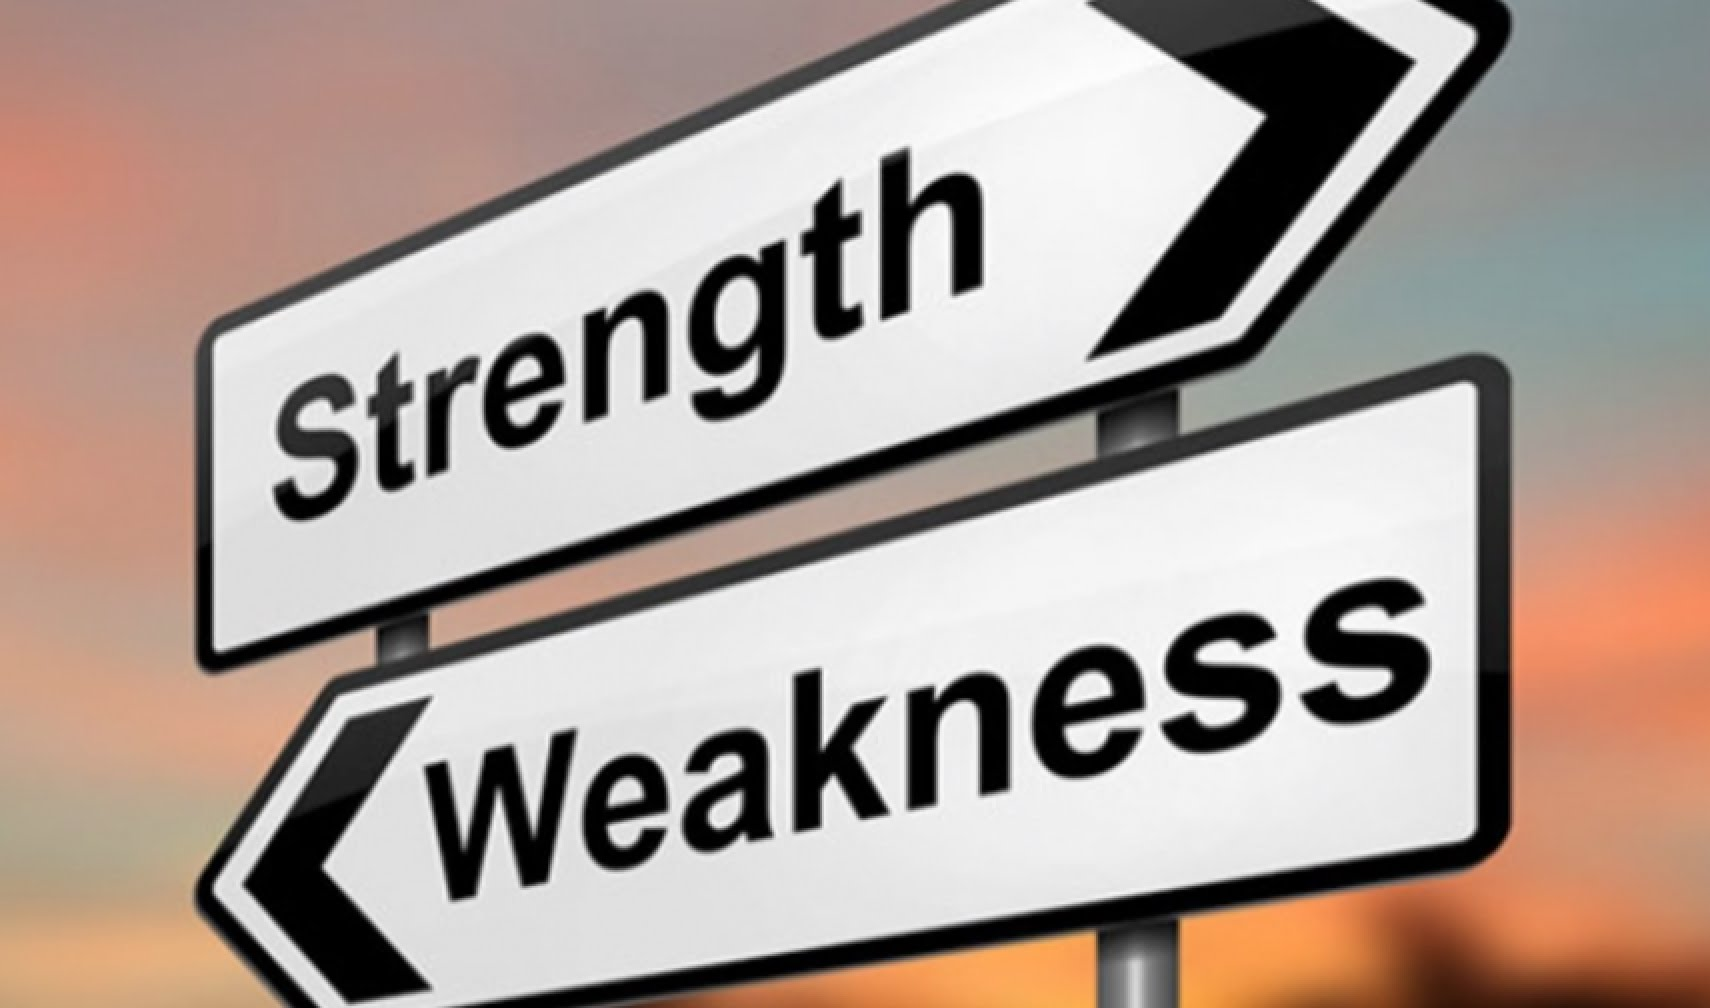 virgin bule weakness strengths Home essays swot analysis of virgin group swot analysis of virgin group it is opened as strengths, weakness  virgin is, as we've seen in.